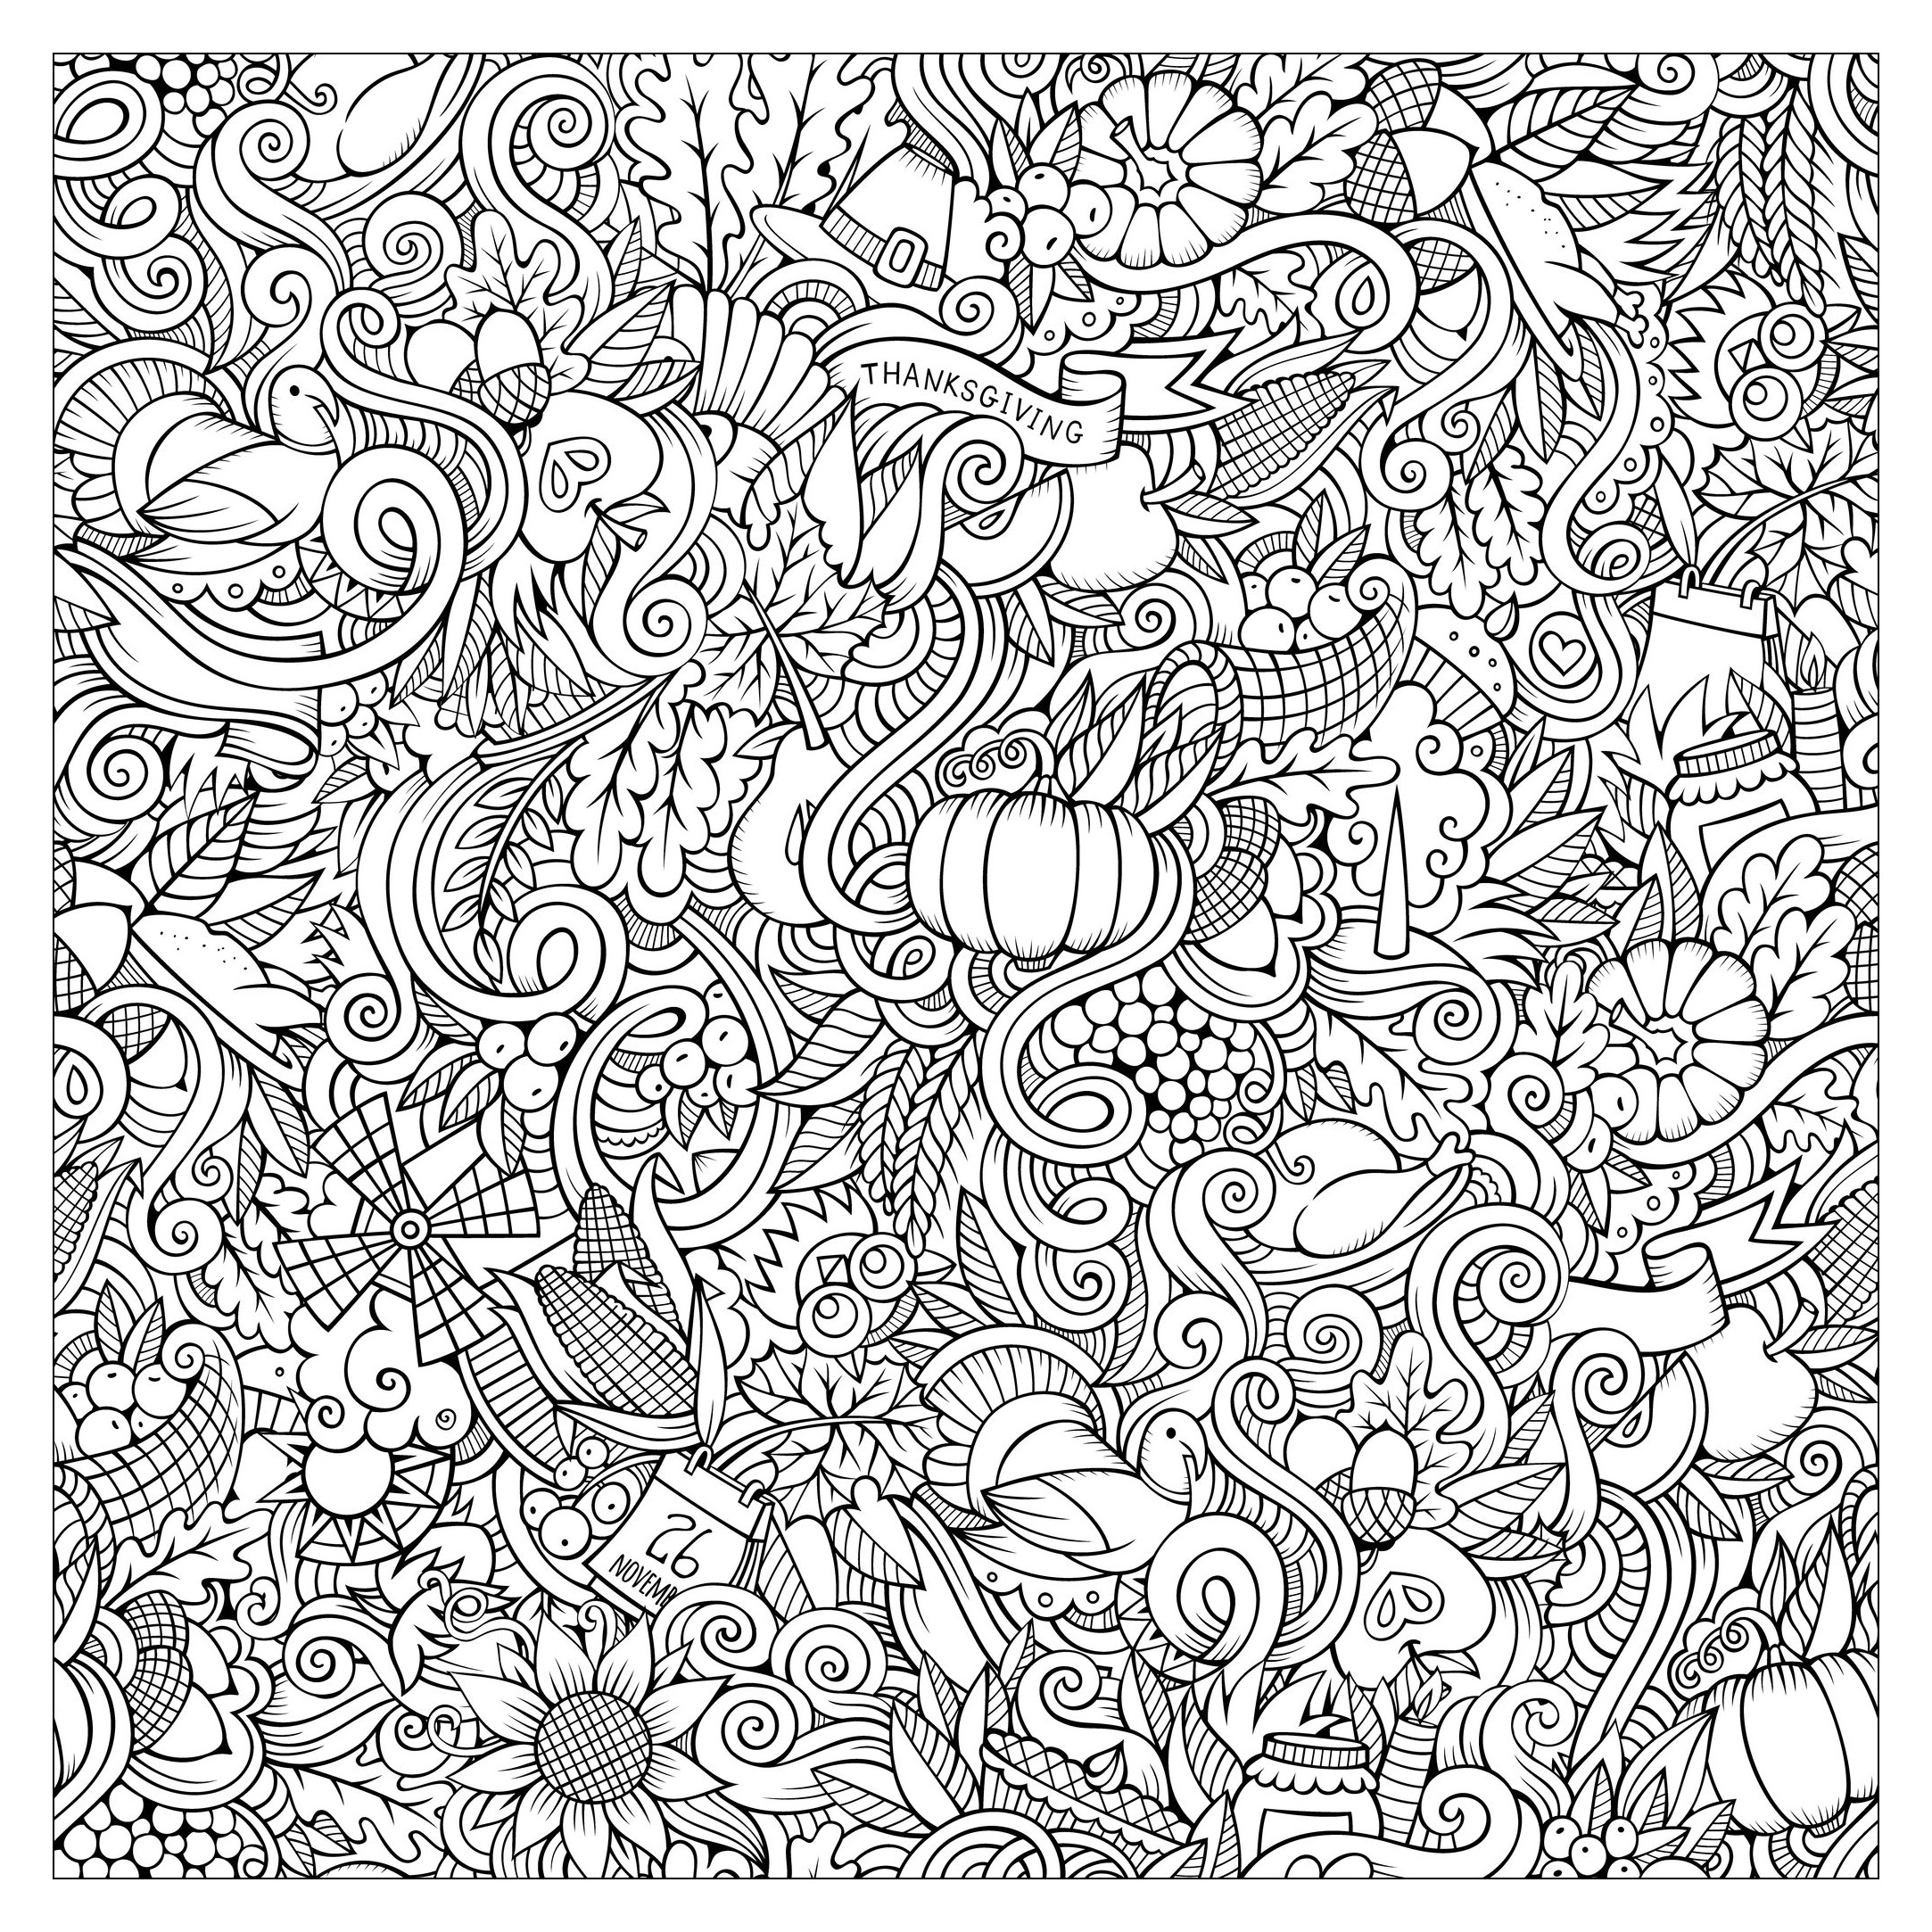 2166x2166 Best Thanksgiving Coloring Pages For Adults To Download And Print